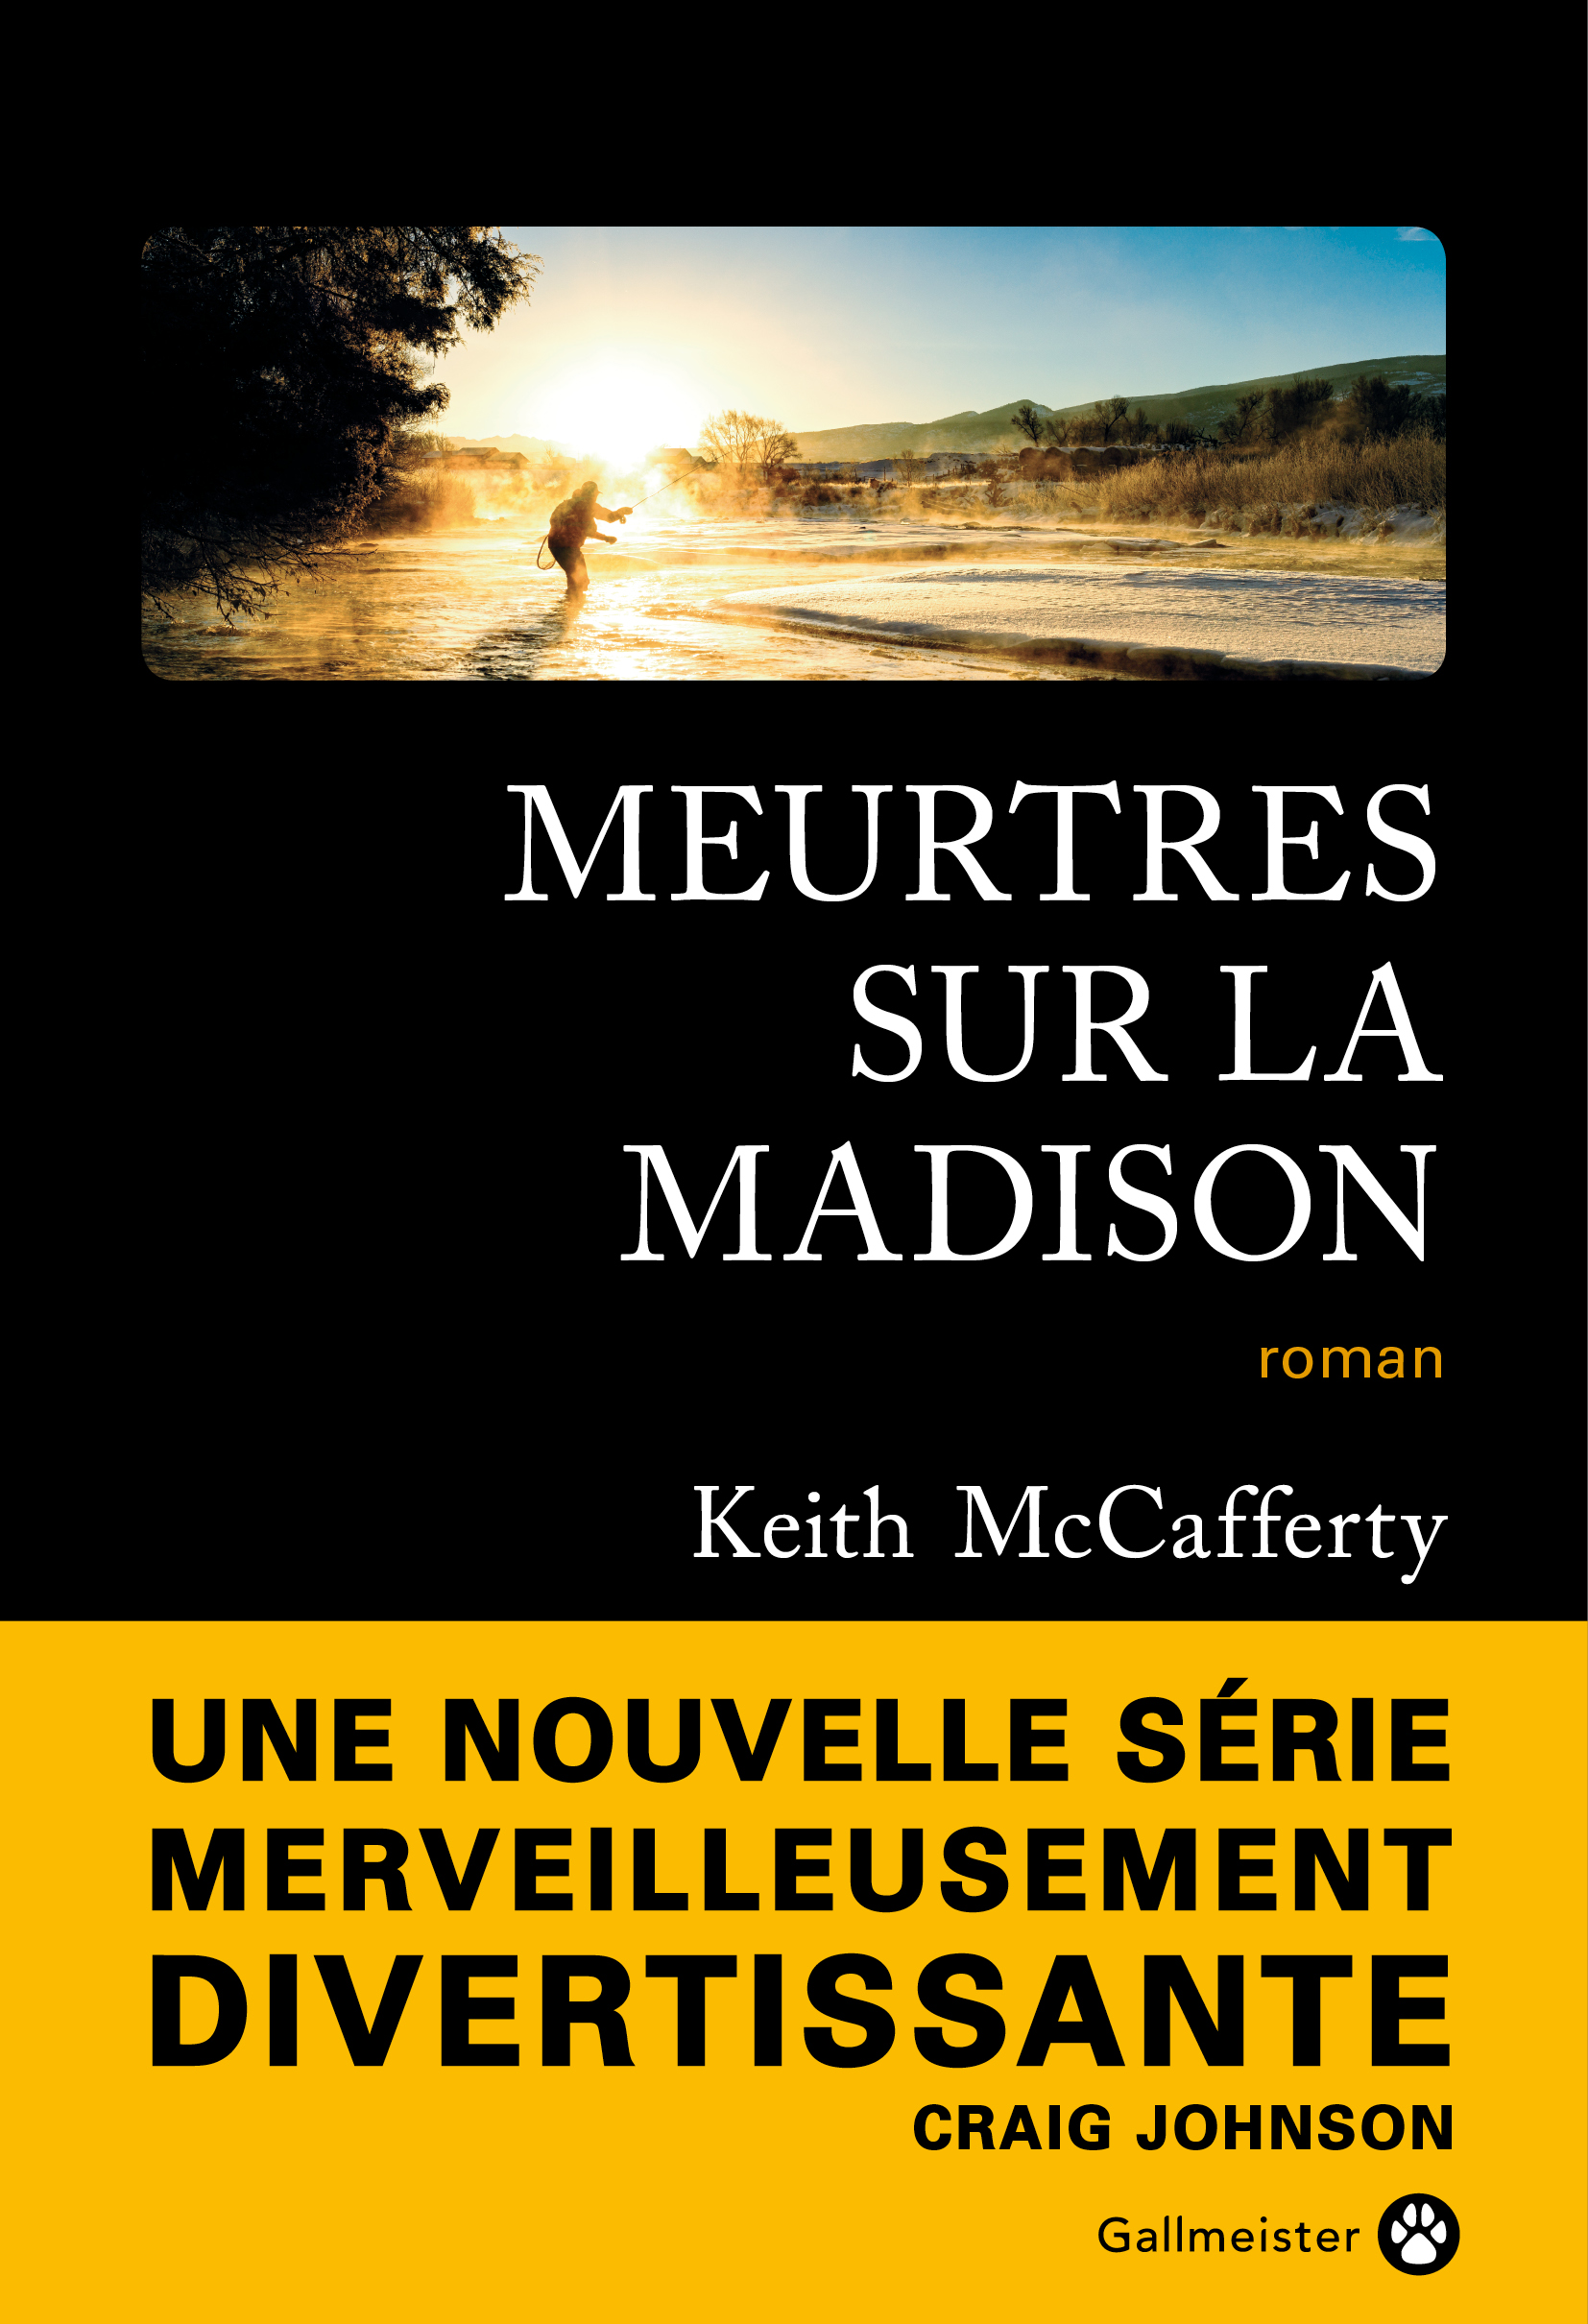 Meurtres sur la Madison | McCafferty, Keith